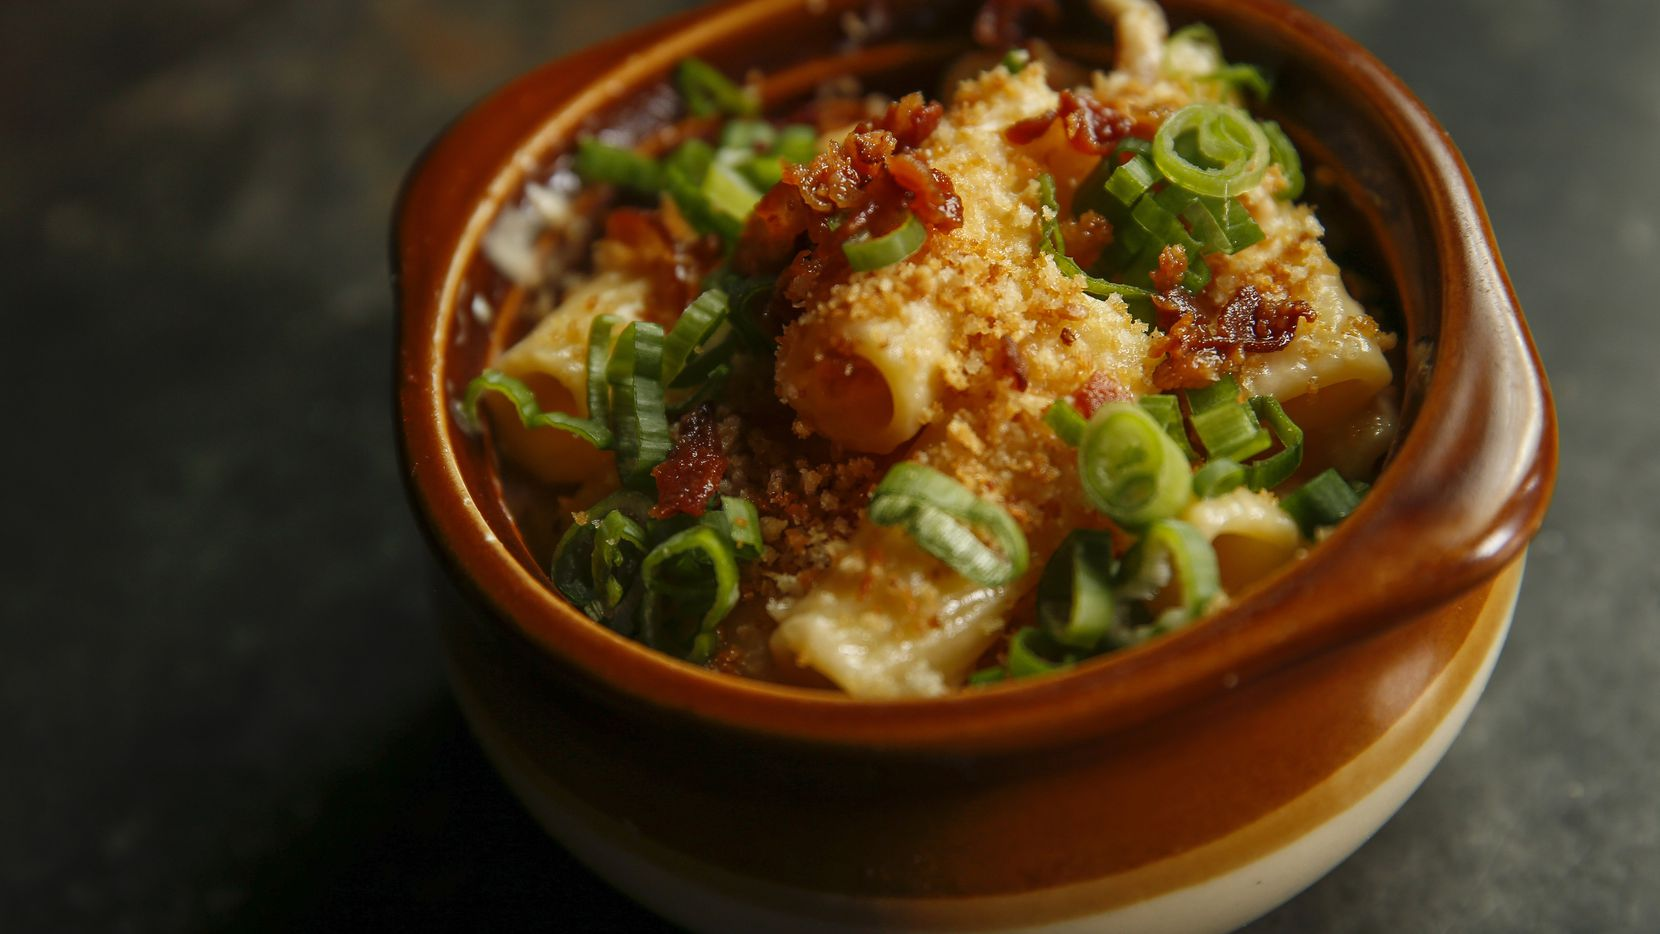 Rigatoni is topped with bacon crumbles, green onions and toasted panko breadcrumbs in Brick and Bones' habanero mac and cheese. (Ryan Michalesko/Staff Photographer)